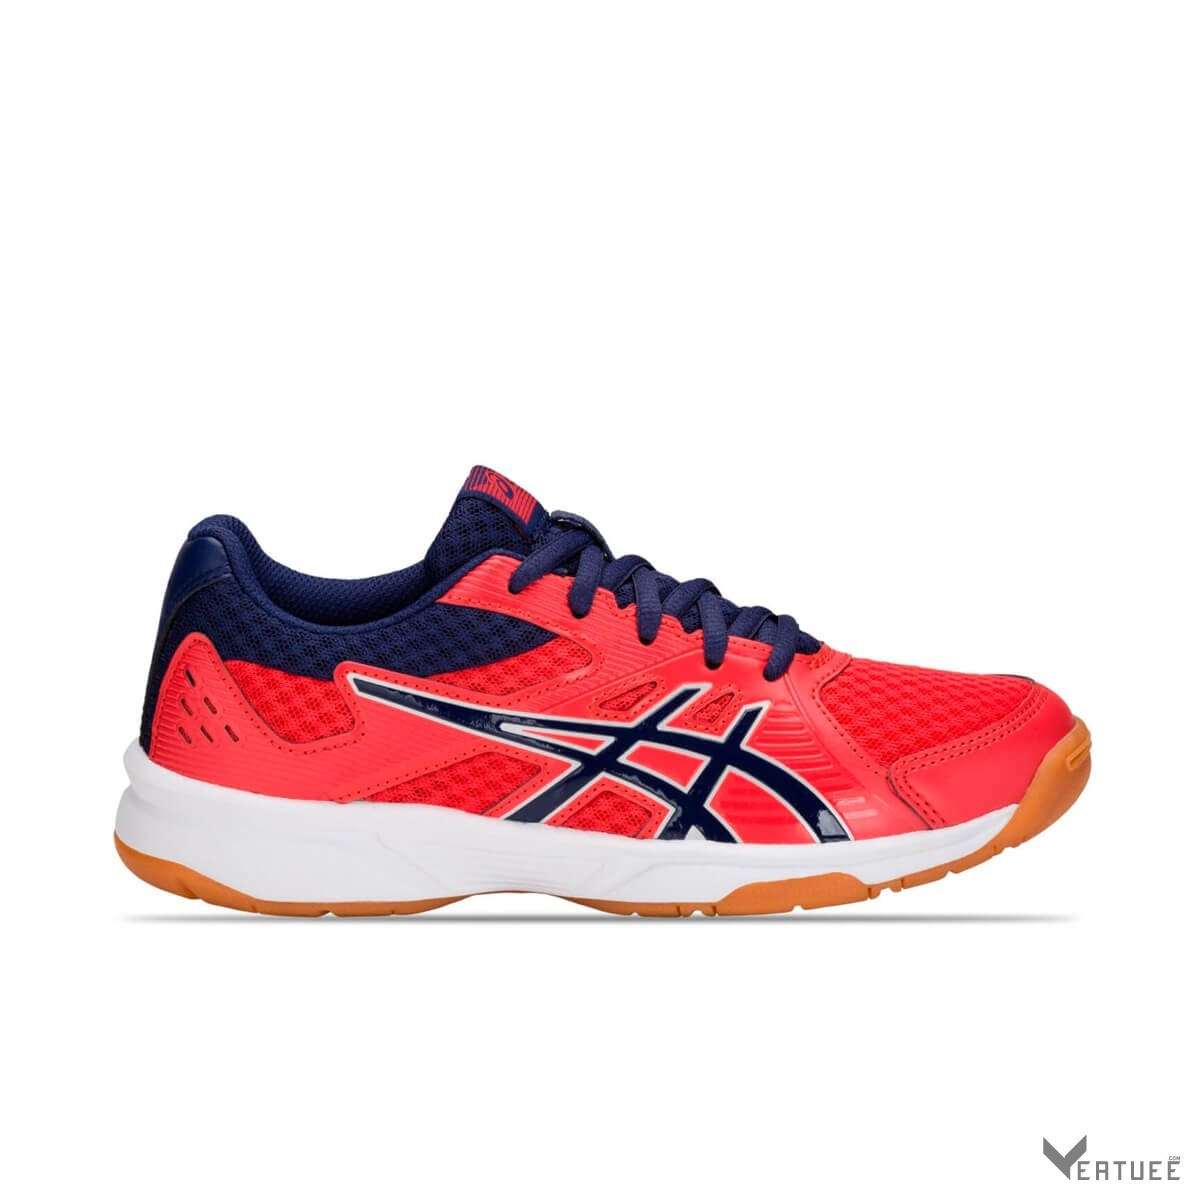 Adversario Omitir Porque  Buy Asics Upcourt 3 Red Alert/Indigo Blue Multicourt Tennis ...